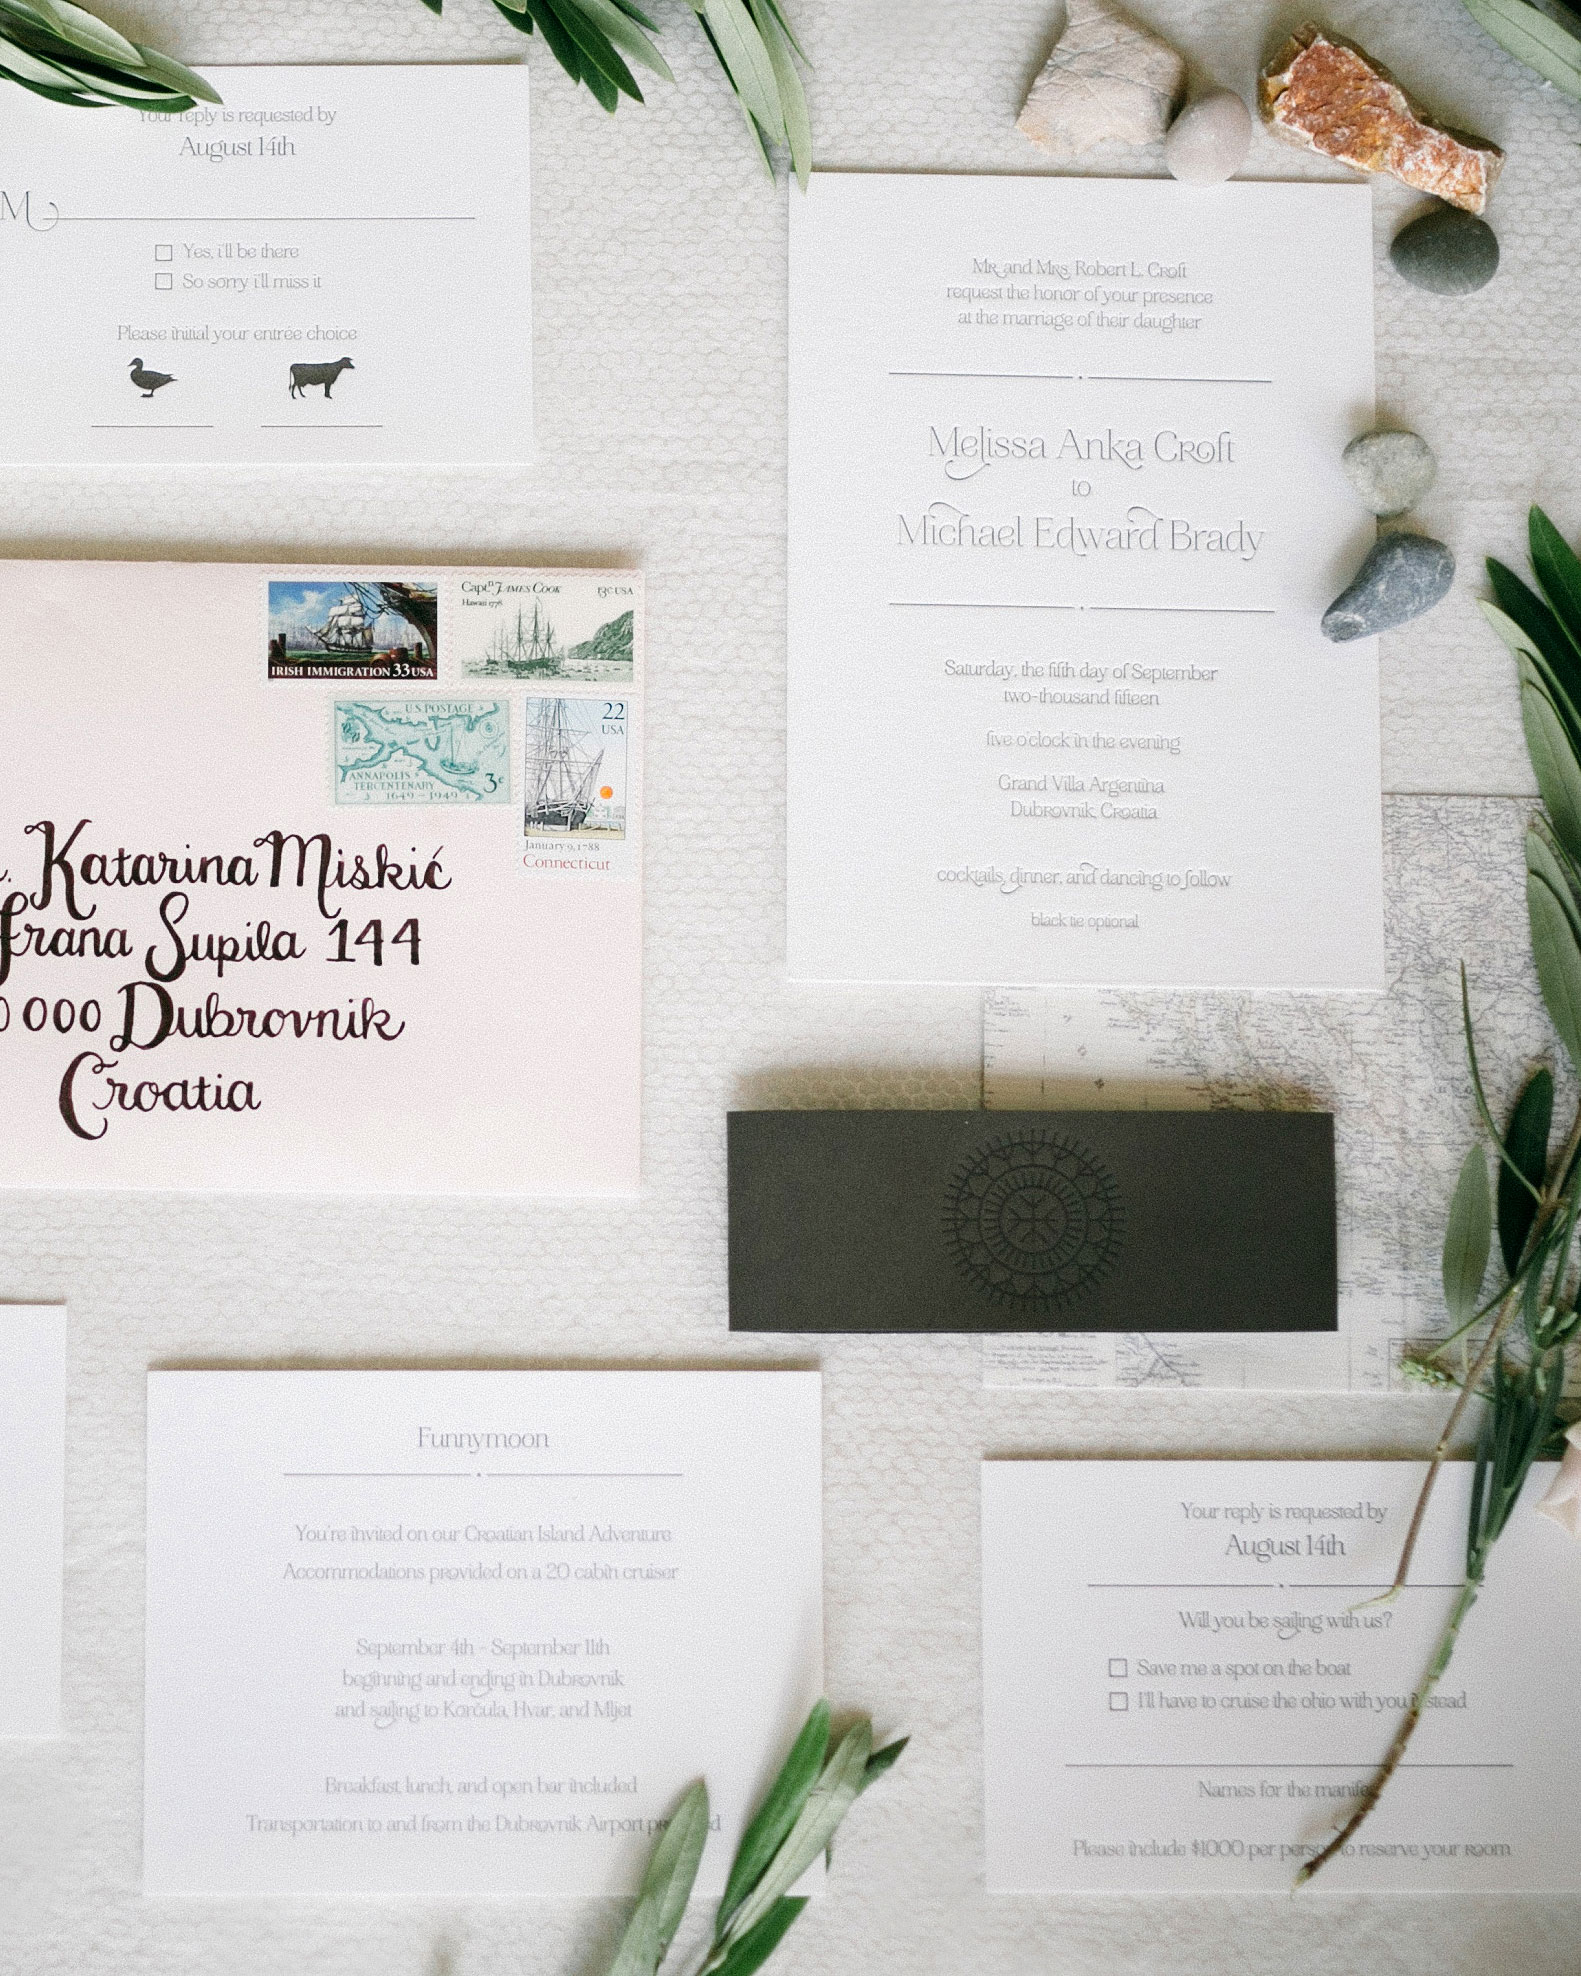 melissa-mike-wedding-invite-0100-s112764-0316.jpg